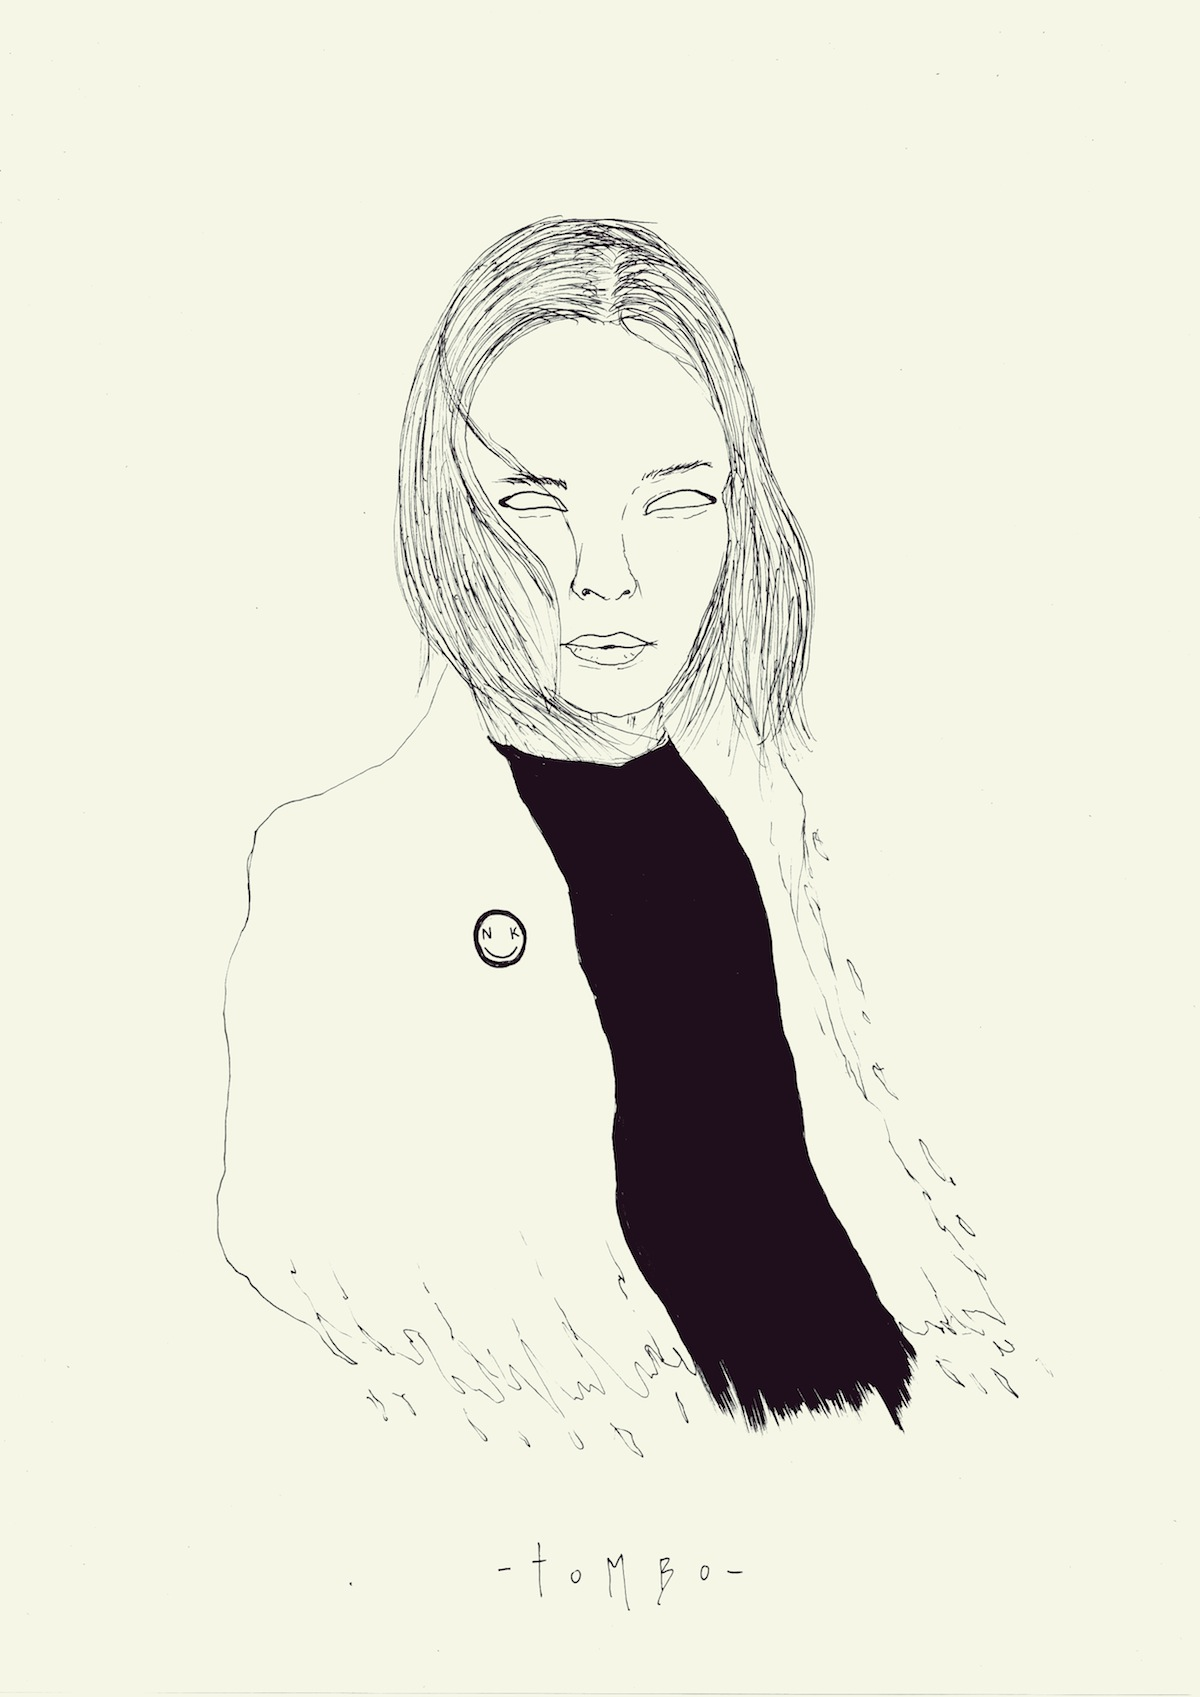 Tombo's Nina Kraviz drawing.